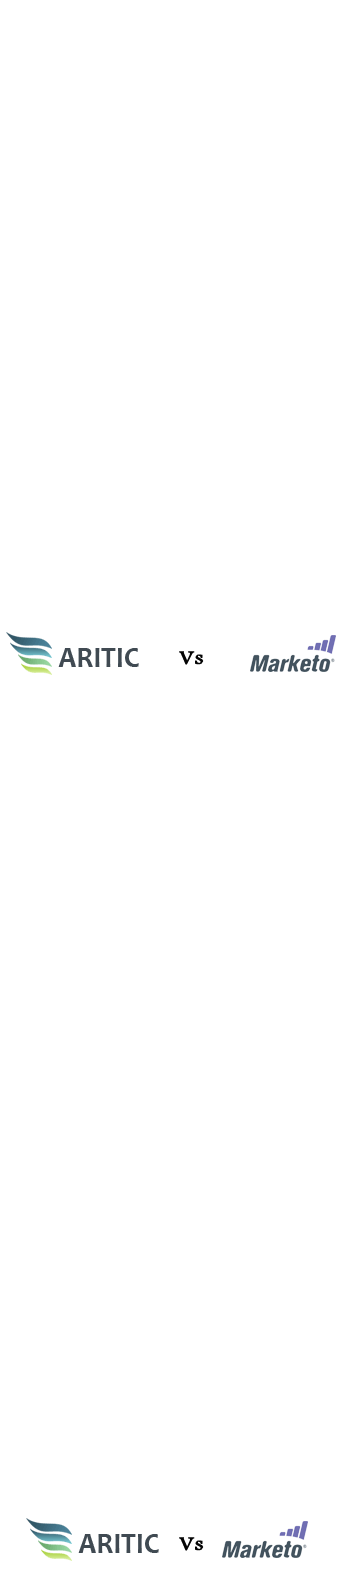 aritic-vs-marketo